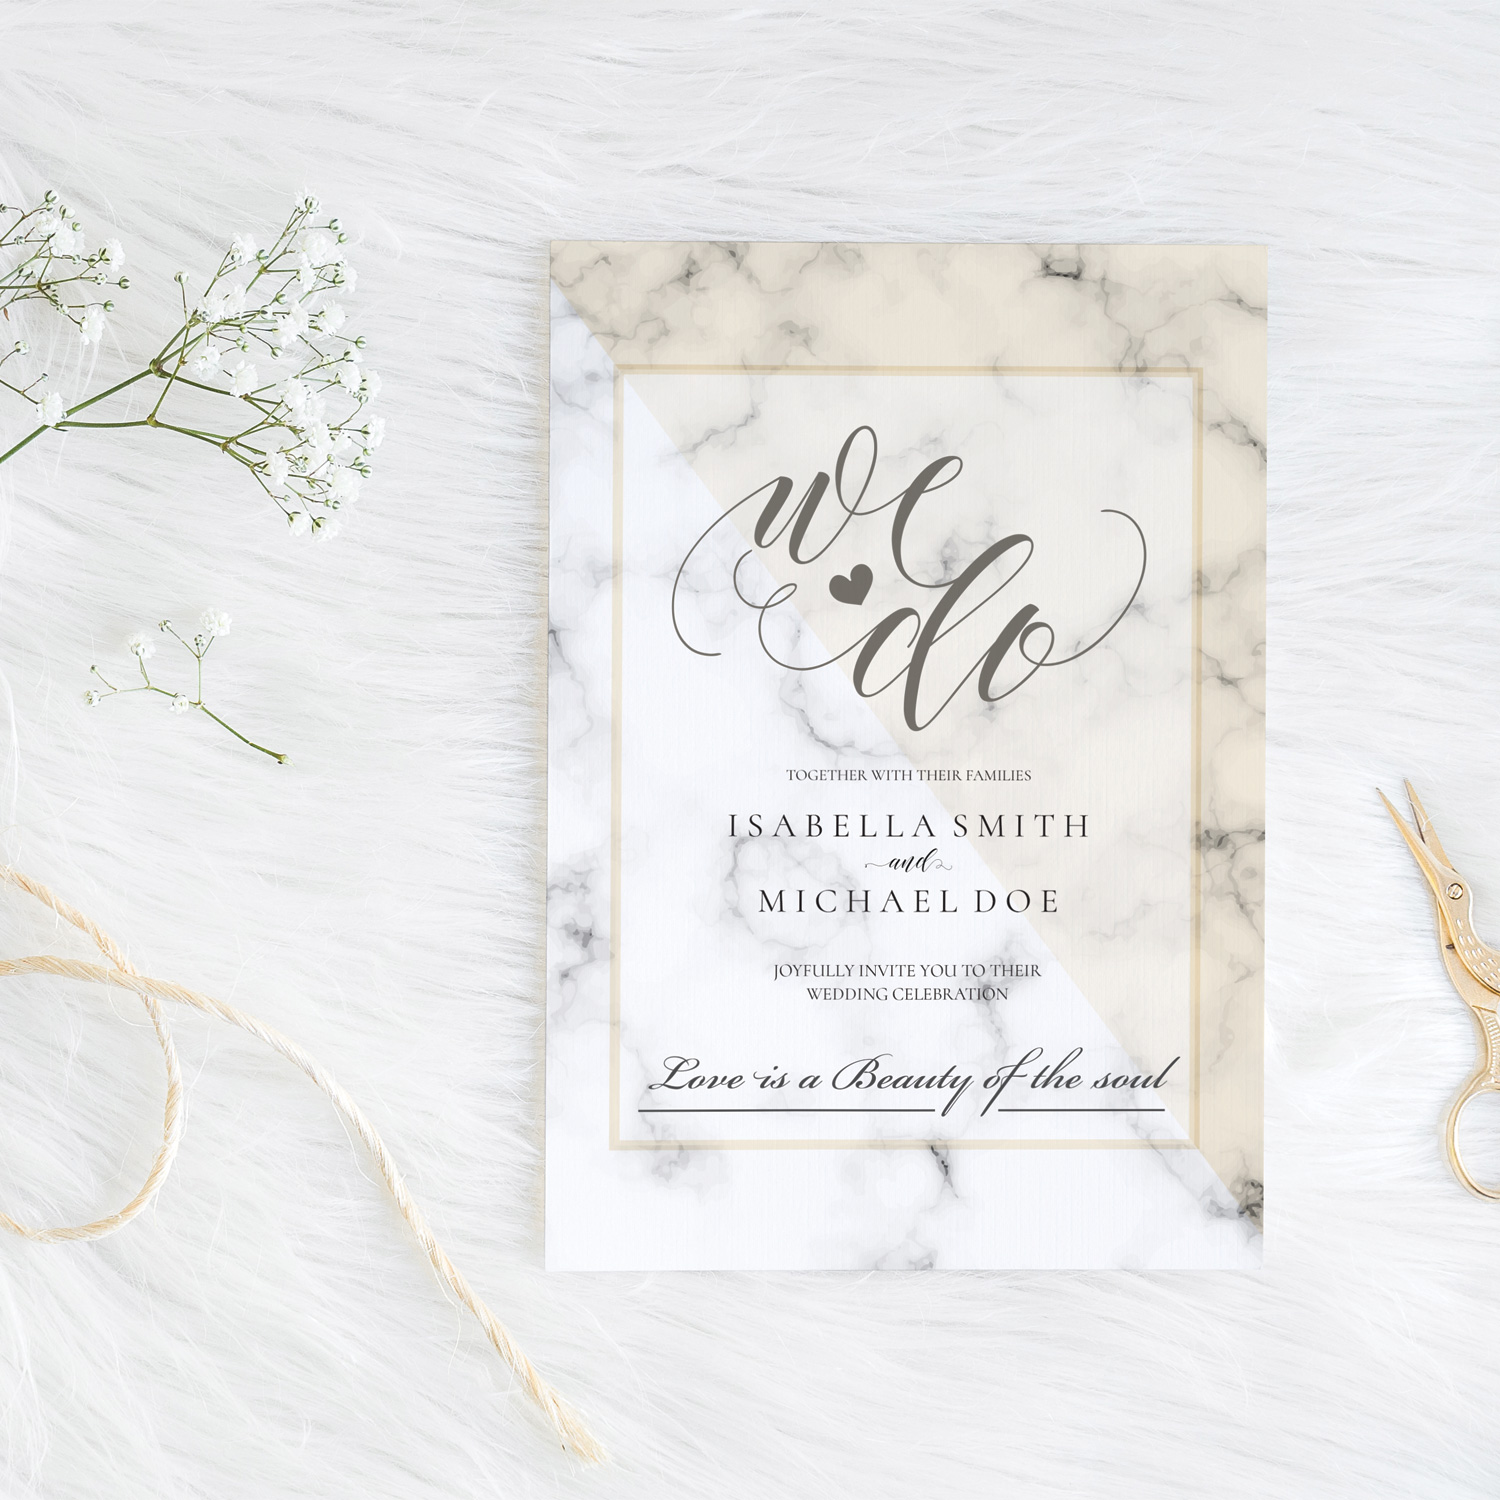 marble wedding invite - simple classy wedding stationery killarney